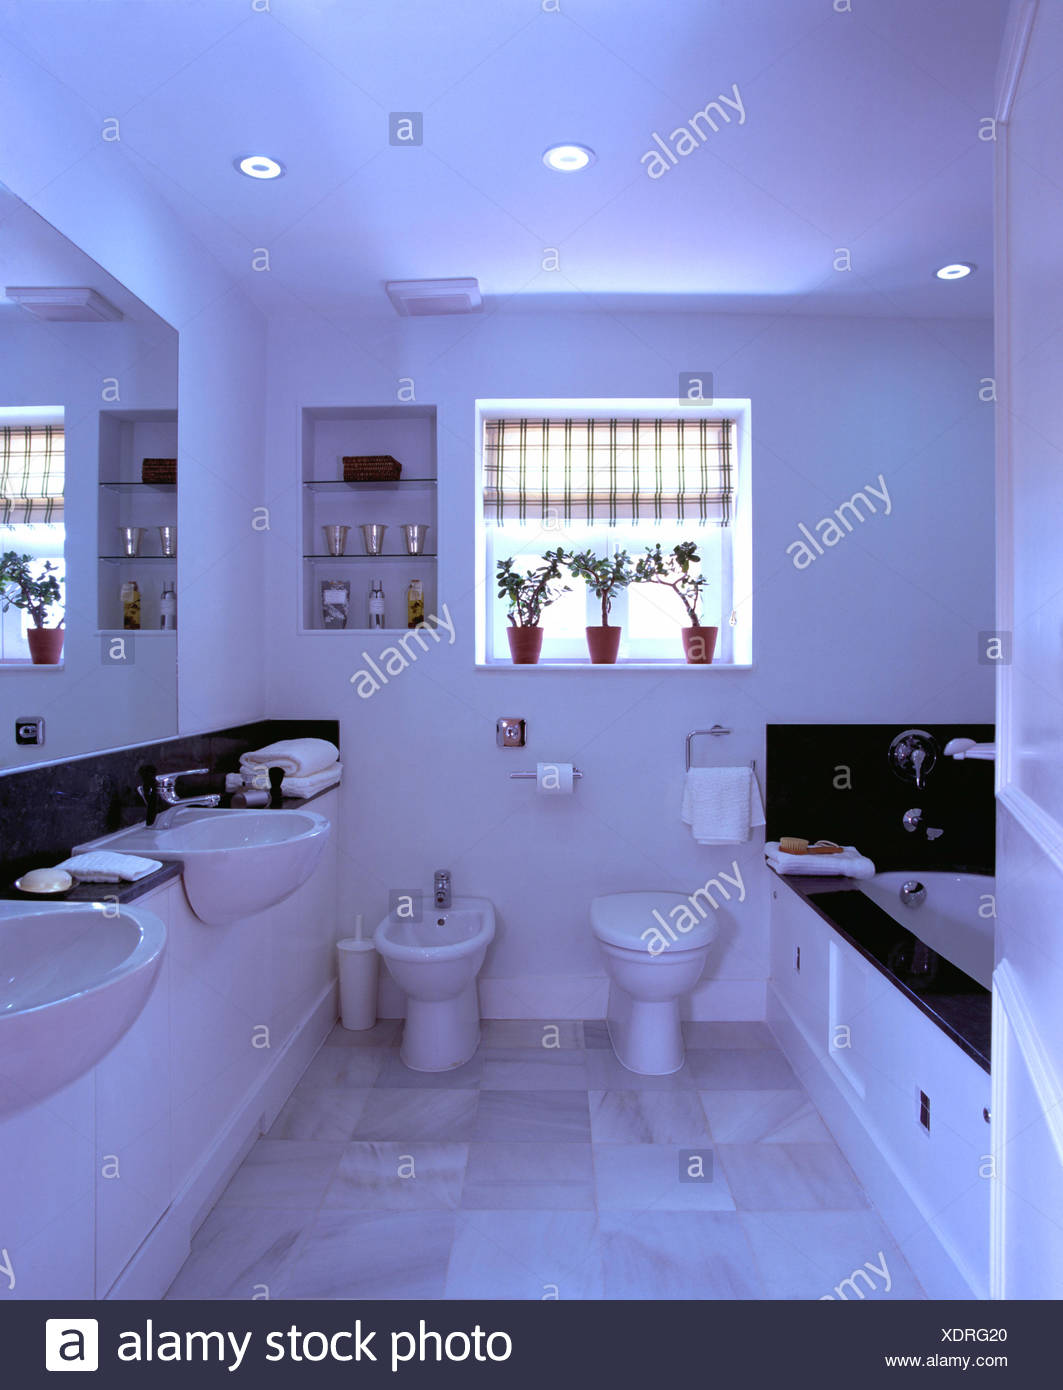 . Checked blind on window above toilet and bidet in modern white